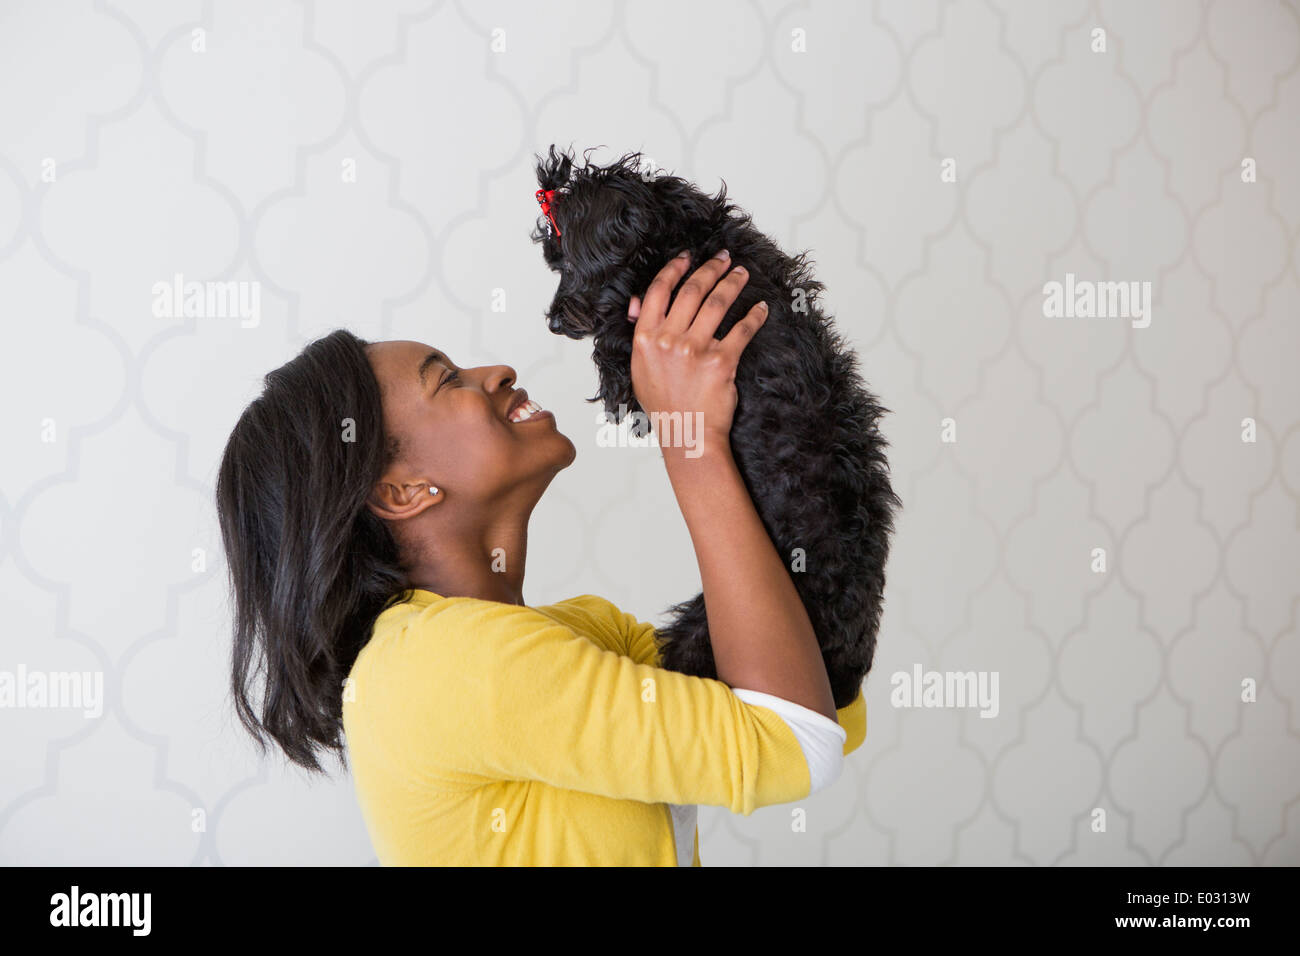 A young girl holding her small black pet dog. - Stock Image